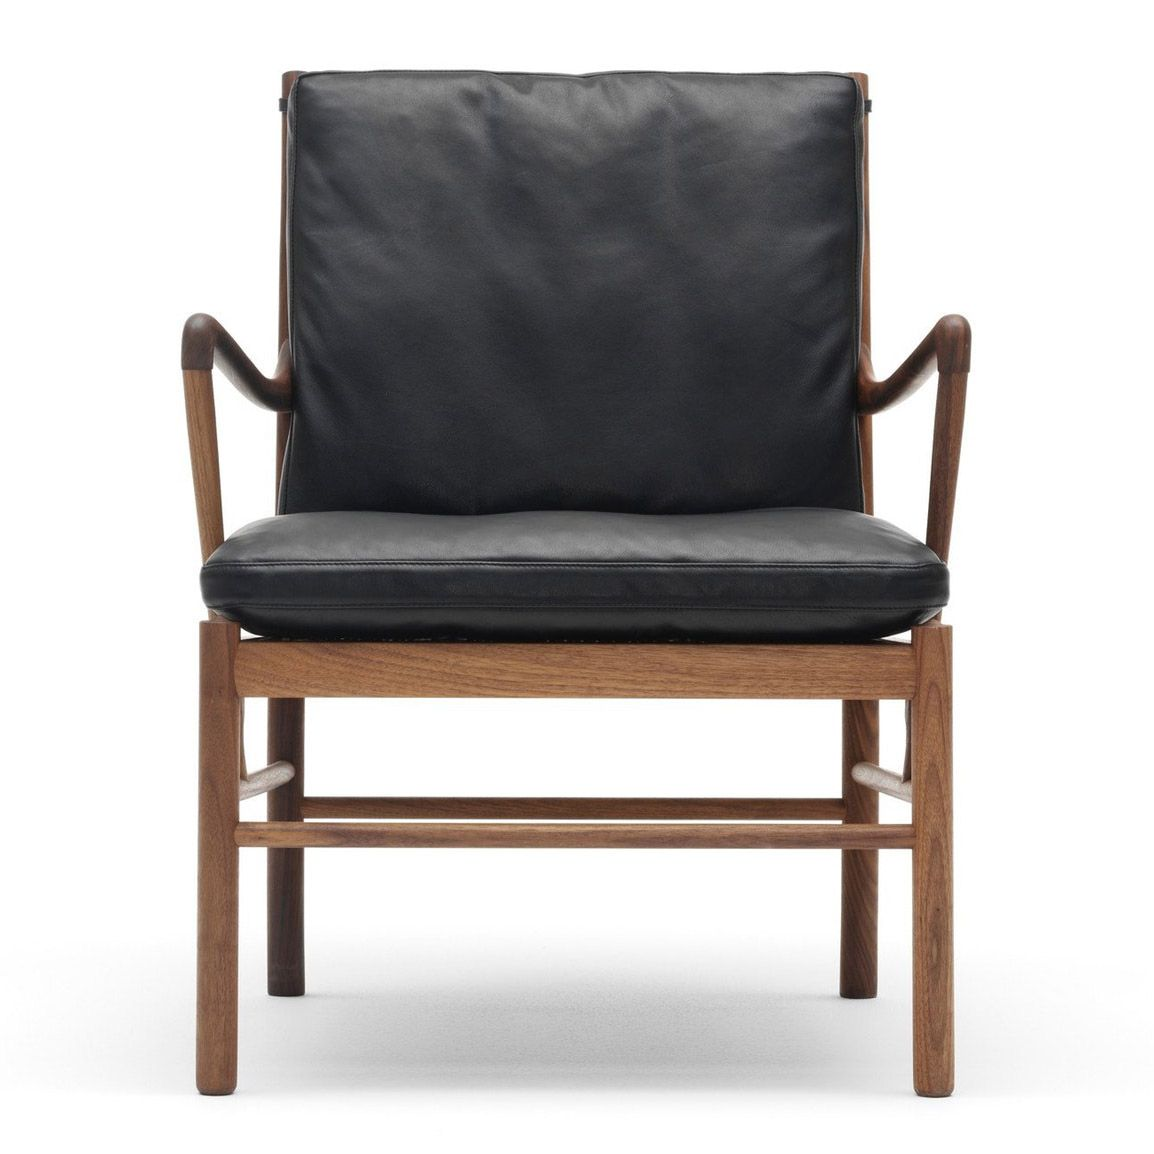 Colonial chair OW149 Nogal by Ole Wanscher edited by Carl Hansen & Son